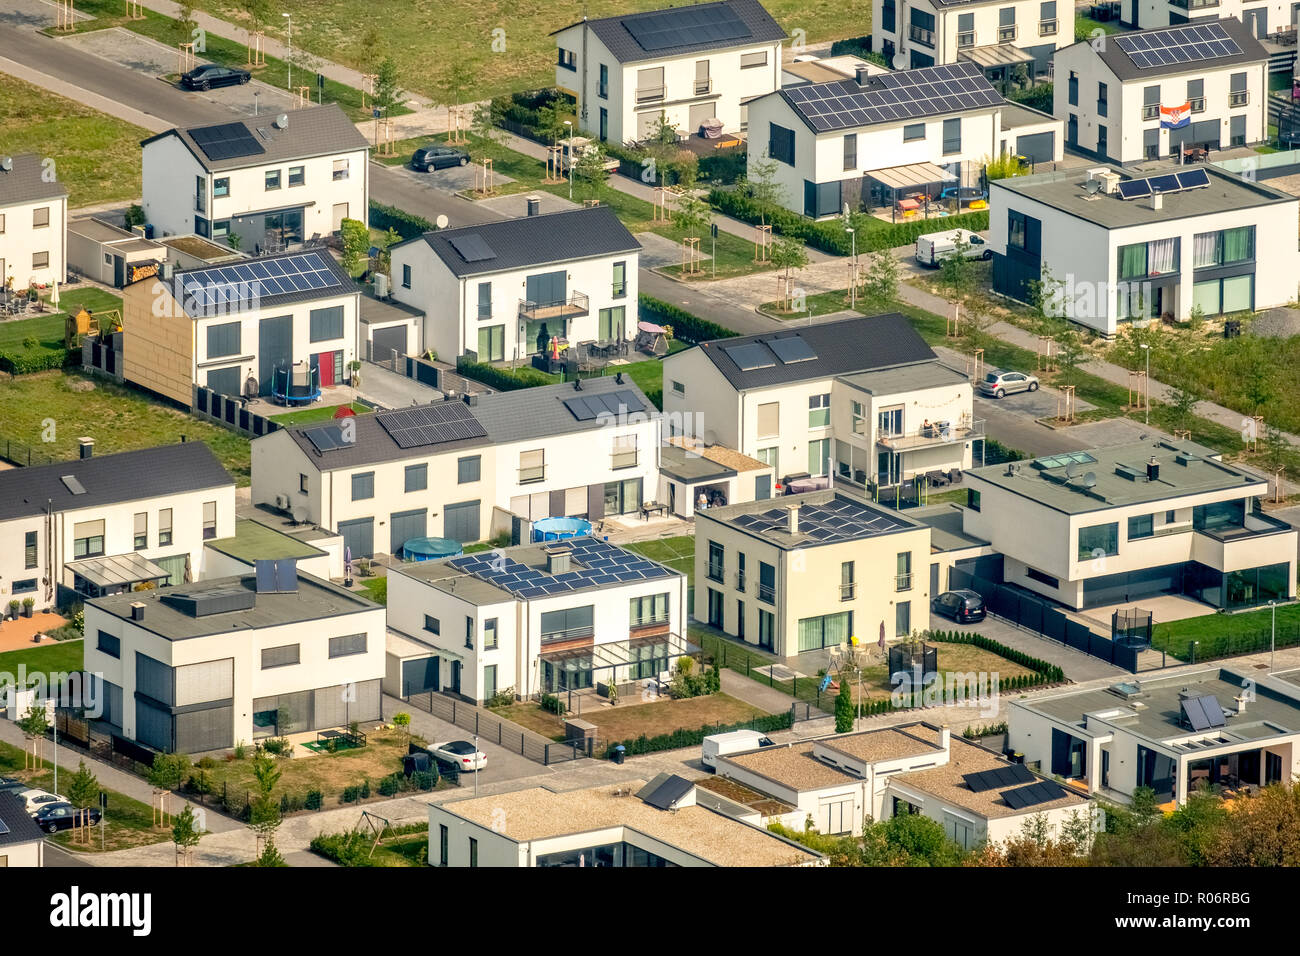 Residential area with property houses, home ownership, aerial view, Haverkamp, Gelsenkirchen, Ruhr area, North Rhine-Westphalia, Germany, DEU, Europe, Stock Photo